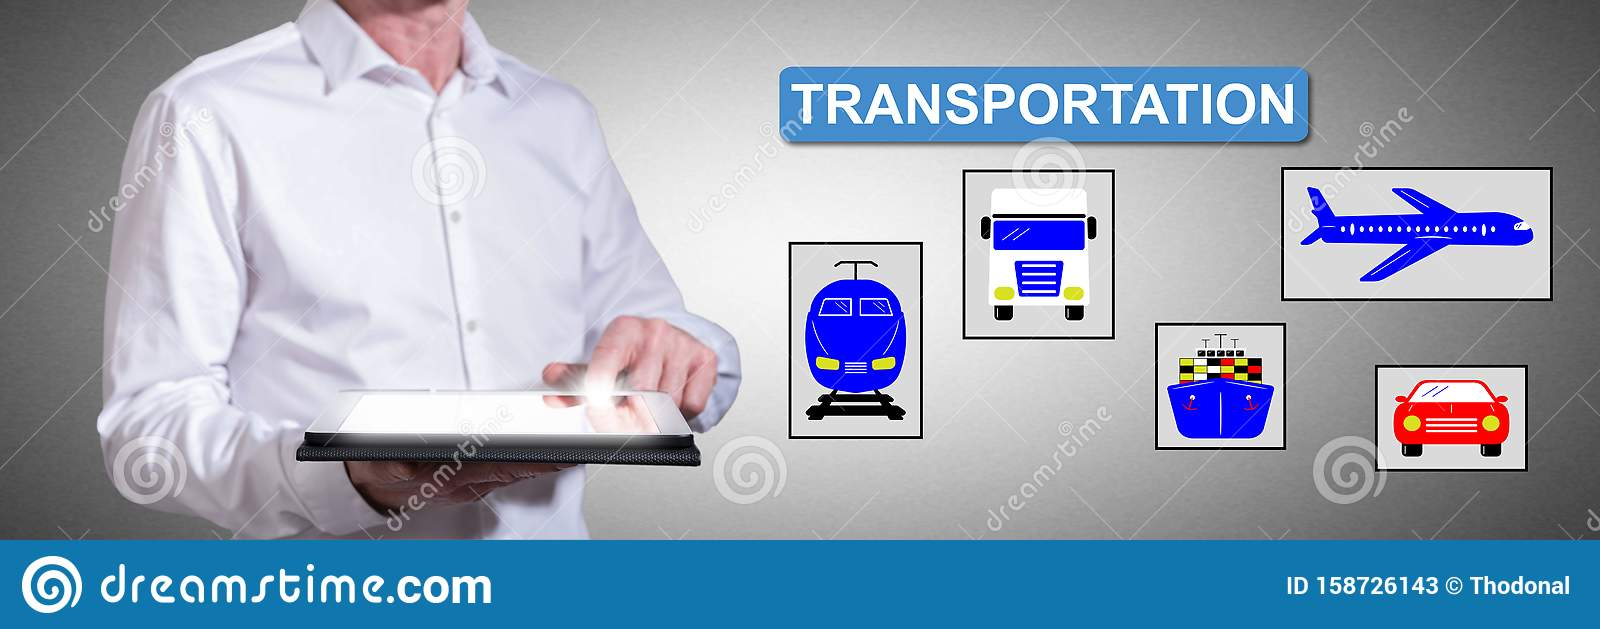 Transportation concept with man using a tablet